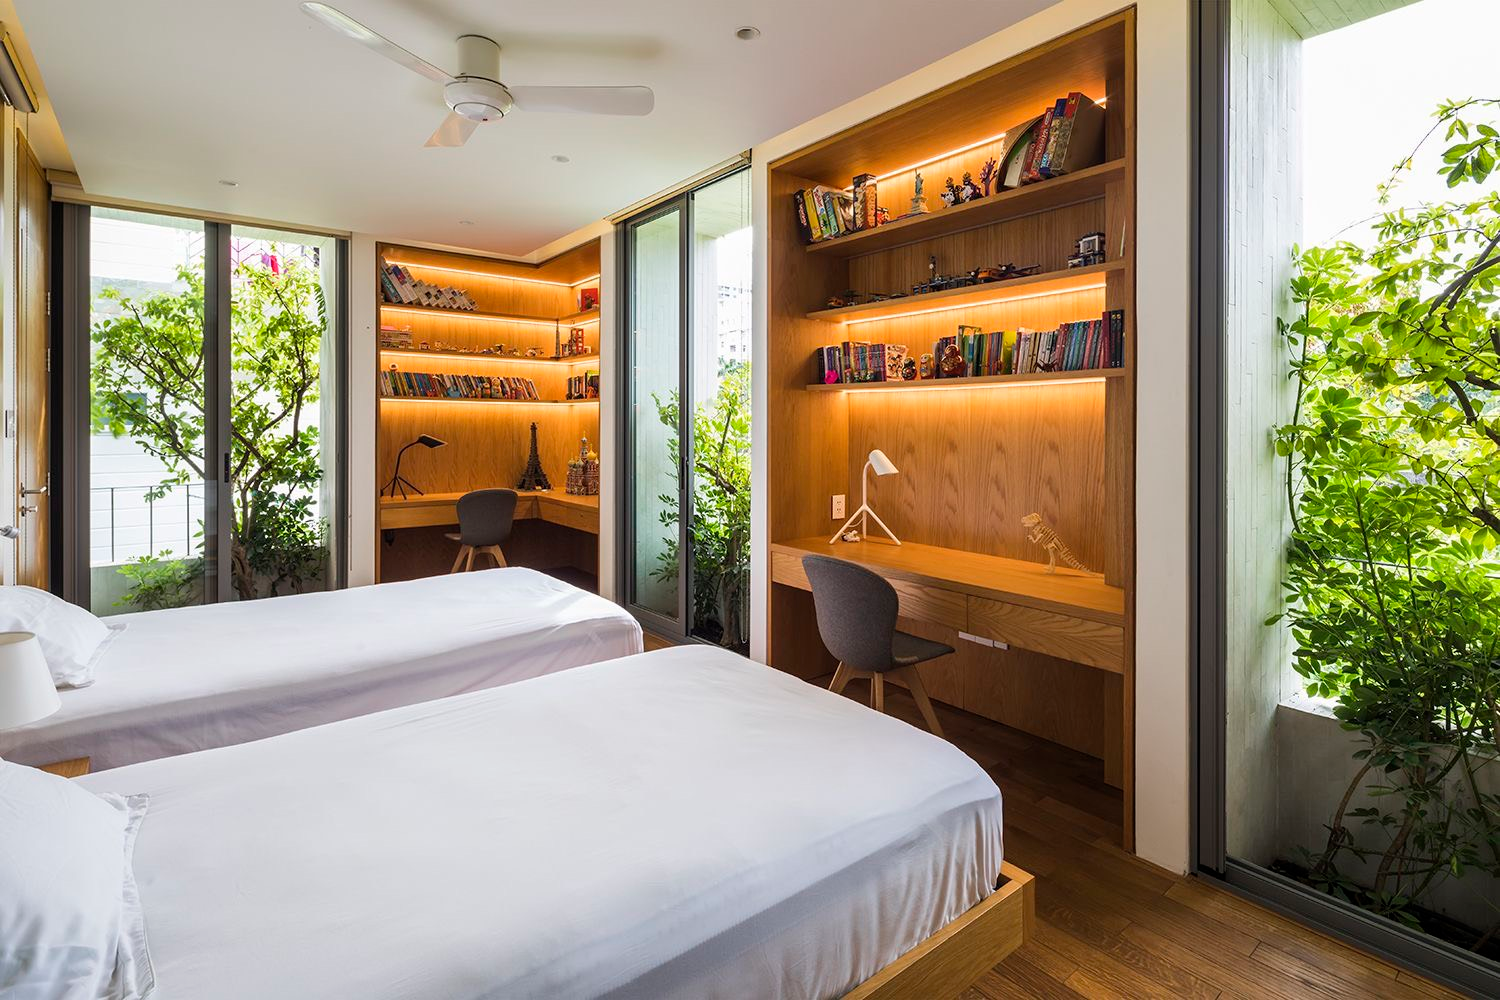 The bedrooms are greened by more than wooden shelves and the usual potted plants. Vines and trees planted just outside glass walls limit provide shade from the sun while providing plenty of natural light.